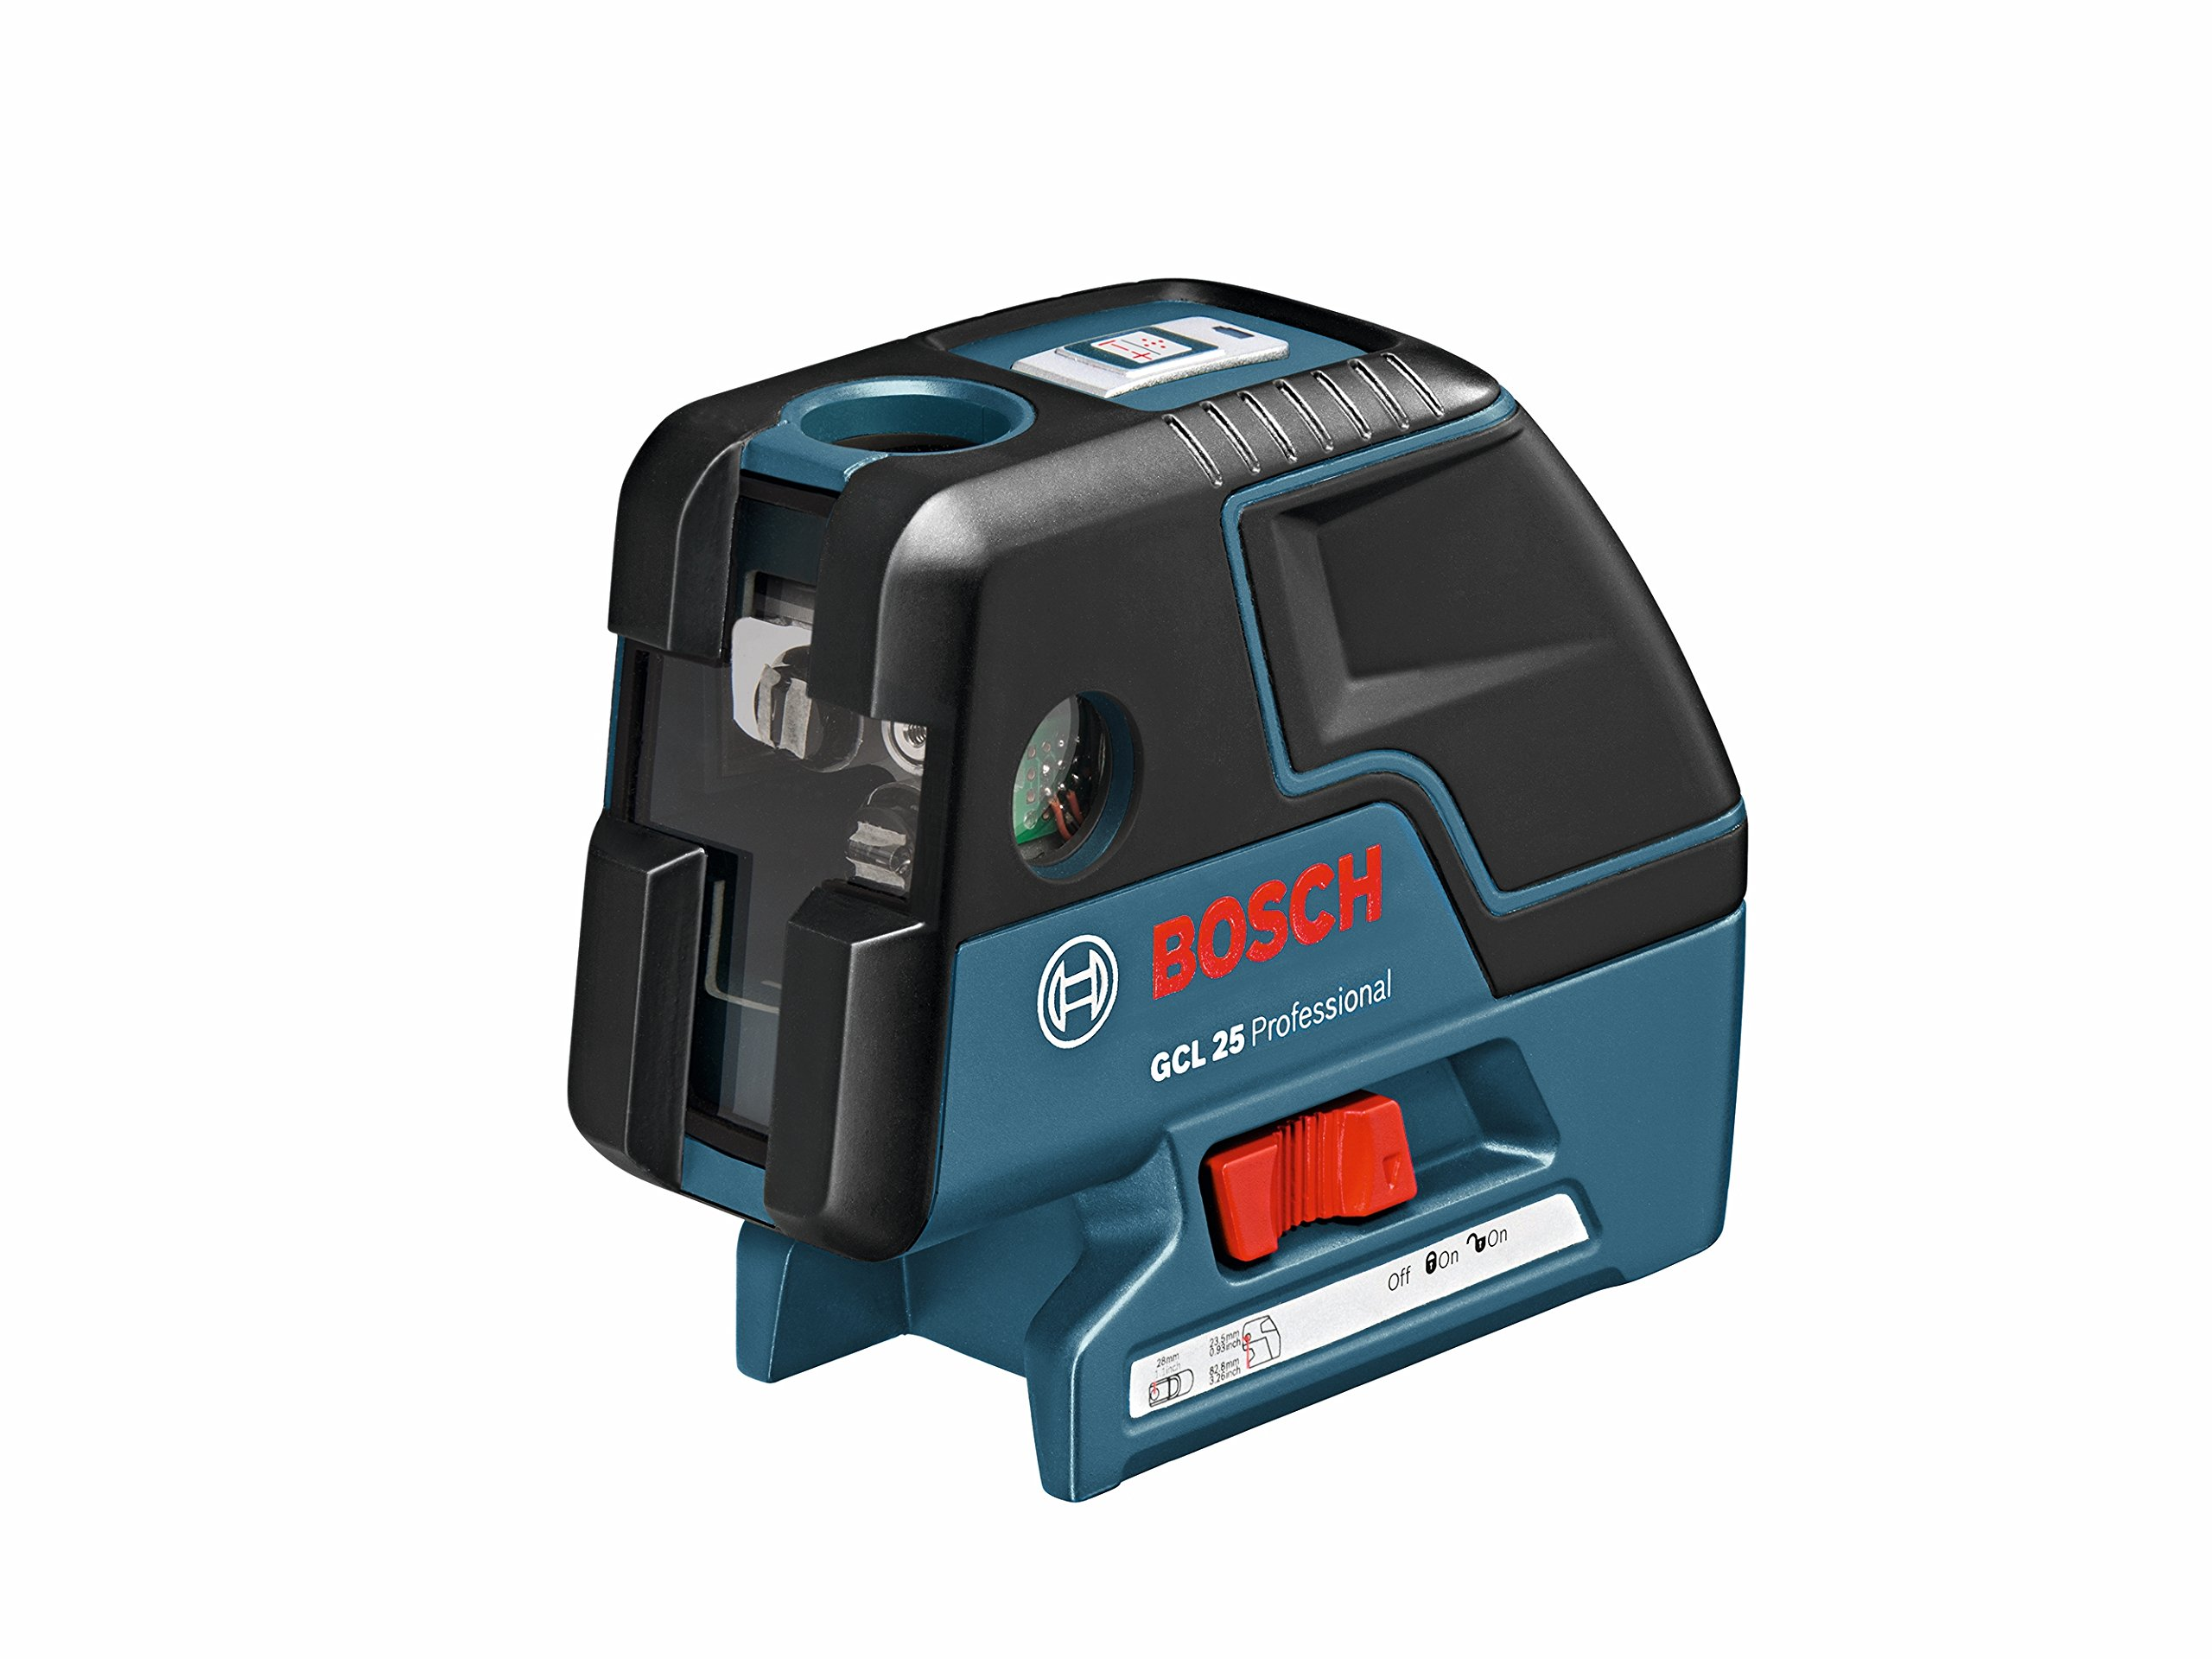 Bosch GCL 25 Self-Leveling 5-Point Alignment Laser